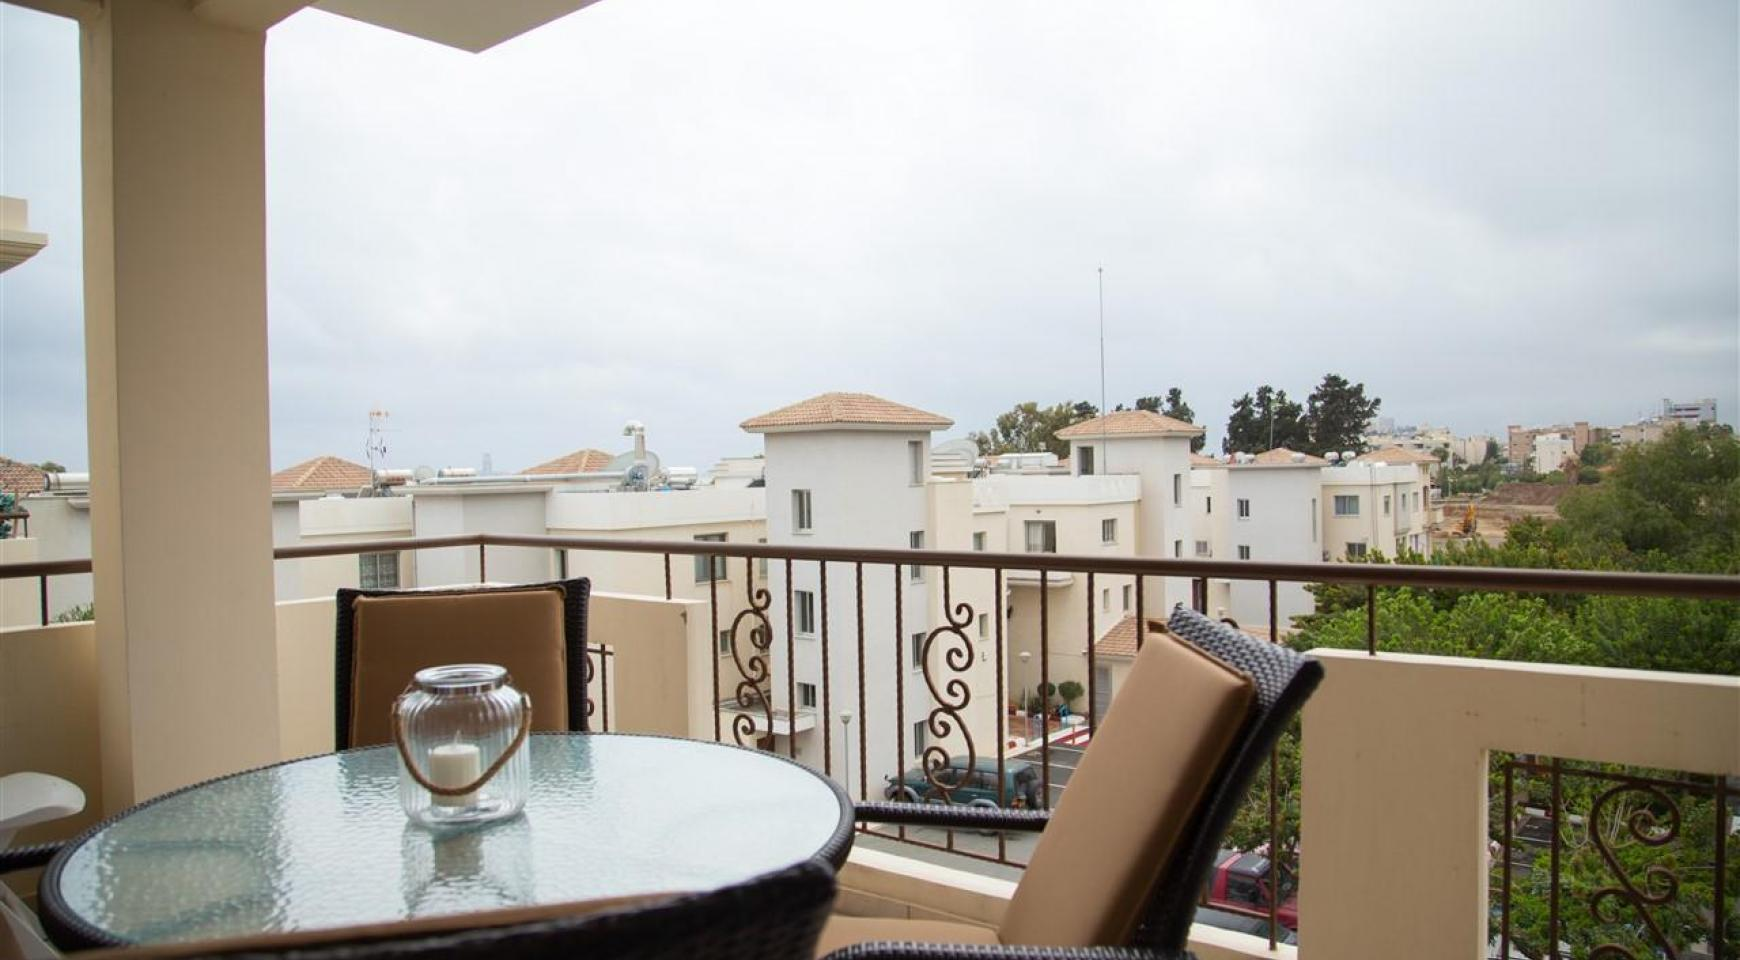 Luxury 2 Bedroom Apartment Mesogios Iris 304 in the Tourist area near the Beach - 26